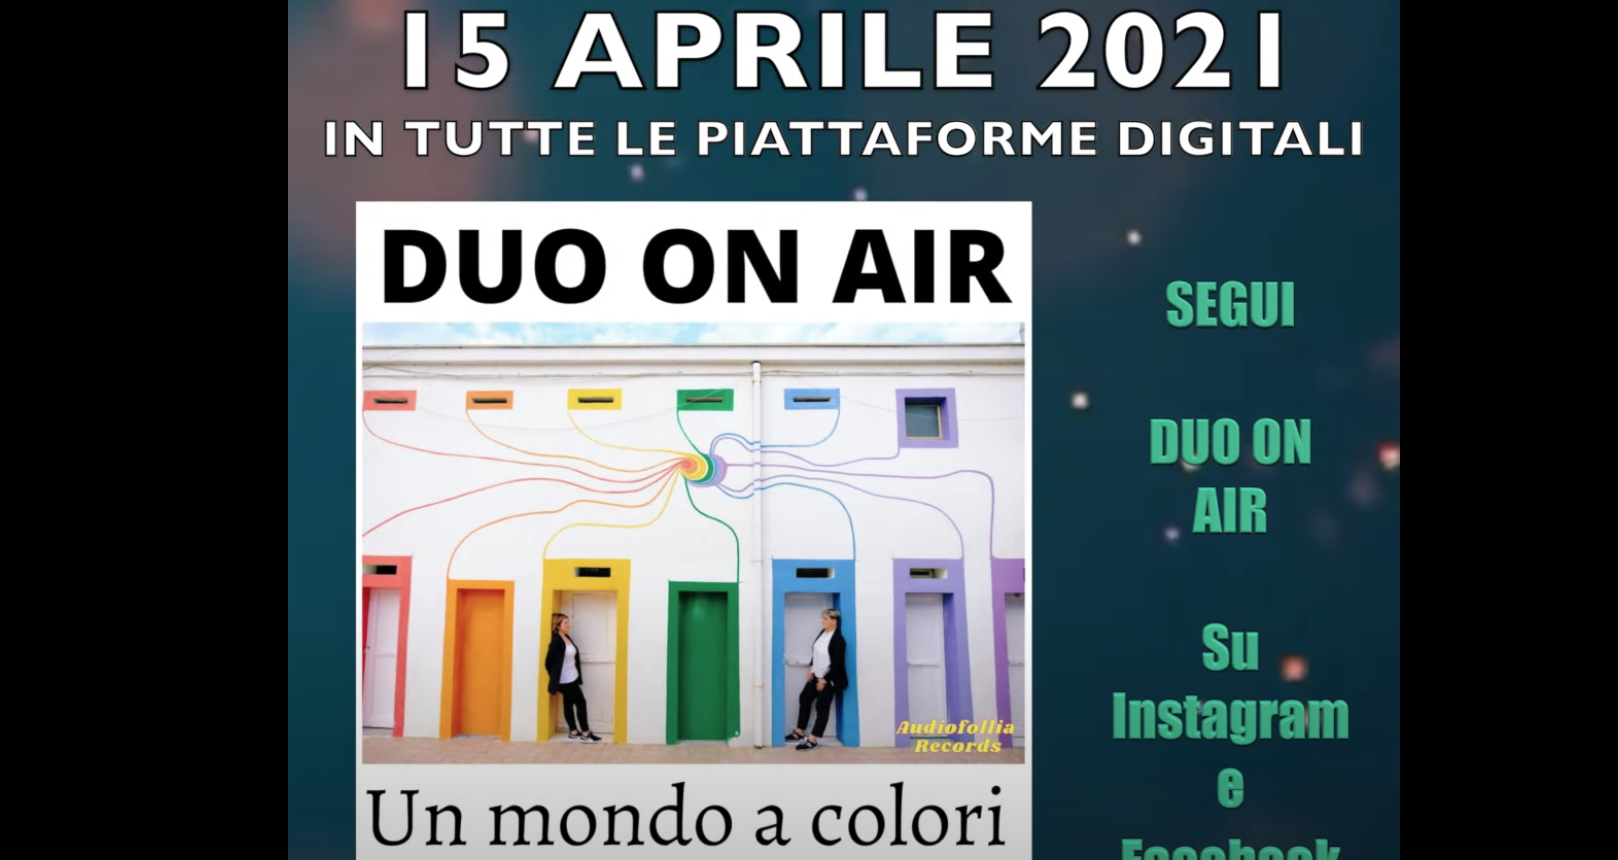 DUO ON AIR - Promo